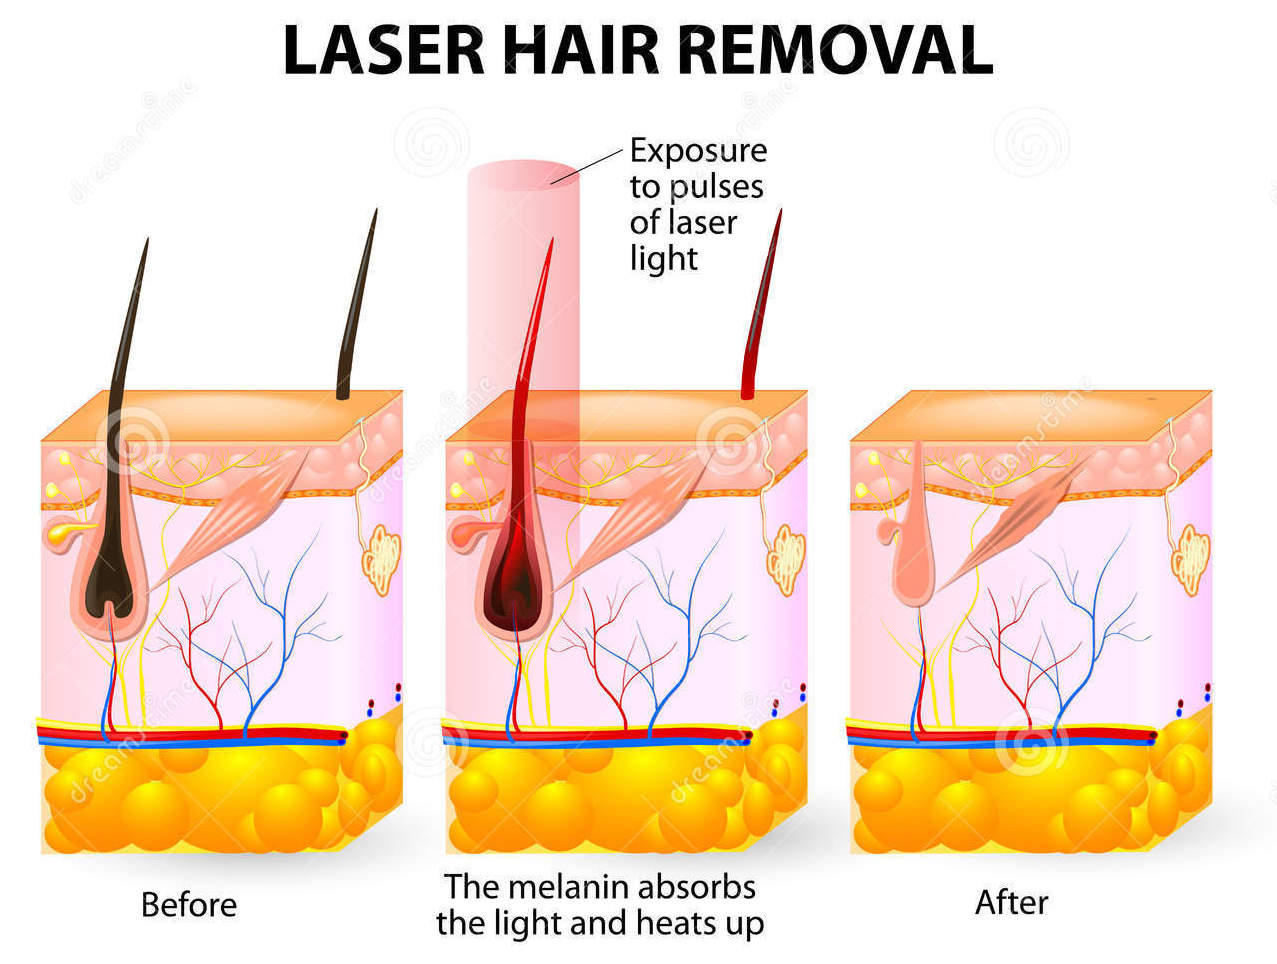 laser-hair-removal-process